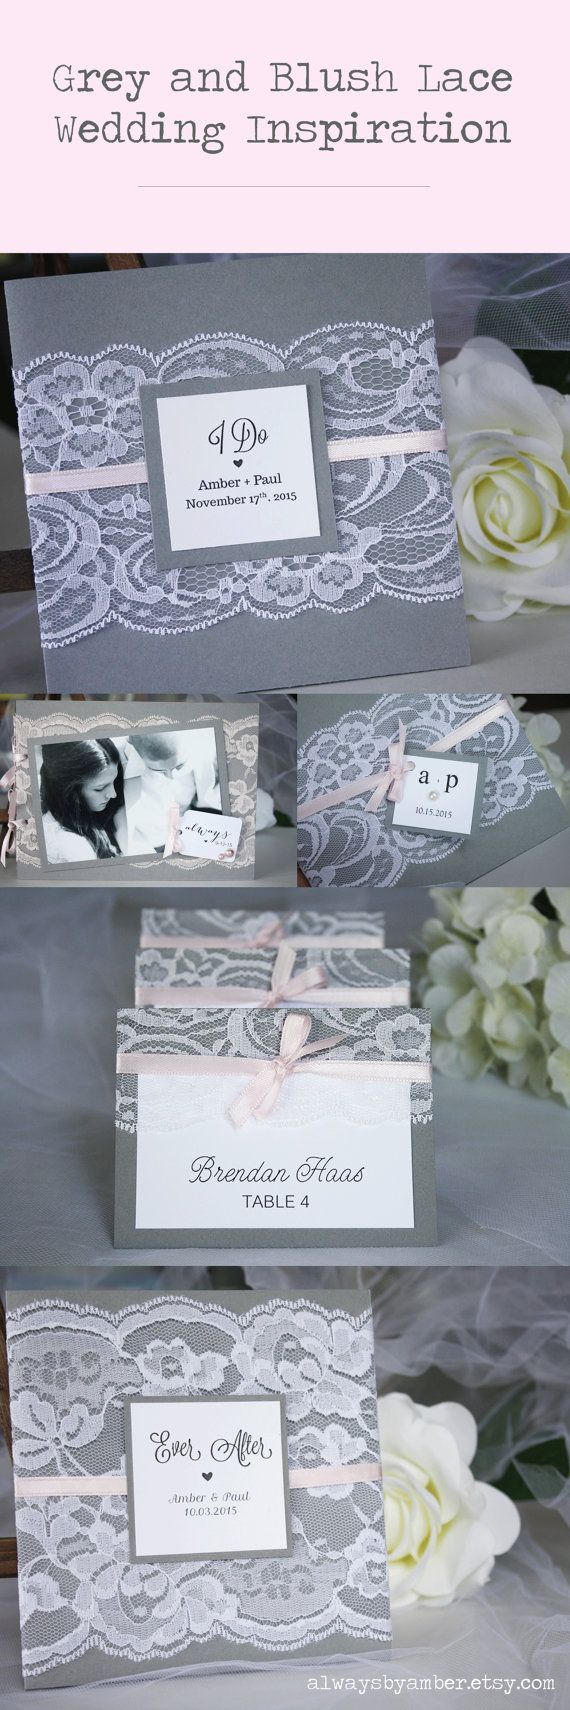 Grey and blush lace wedding invitations, guest book and escort cards by always, byamber #greyandblush #greyandpink #lacewedding #rusticwedding #shabbychic